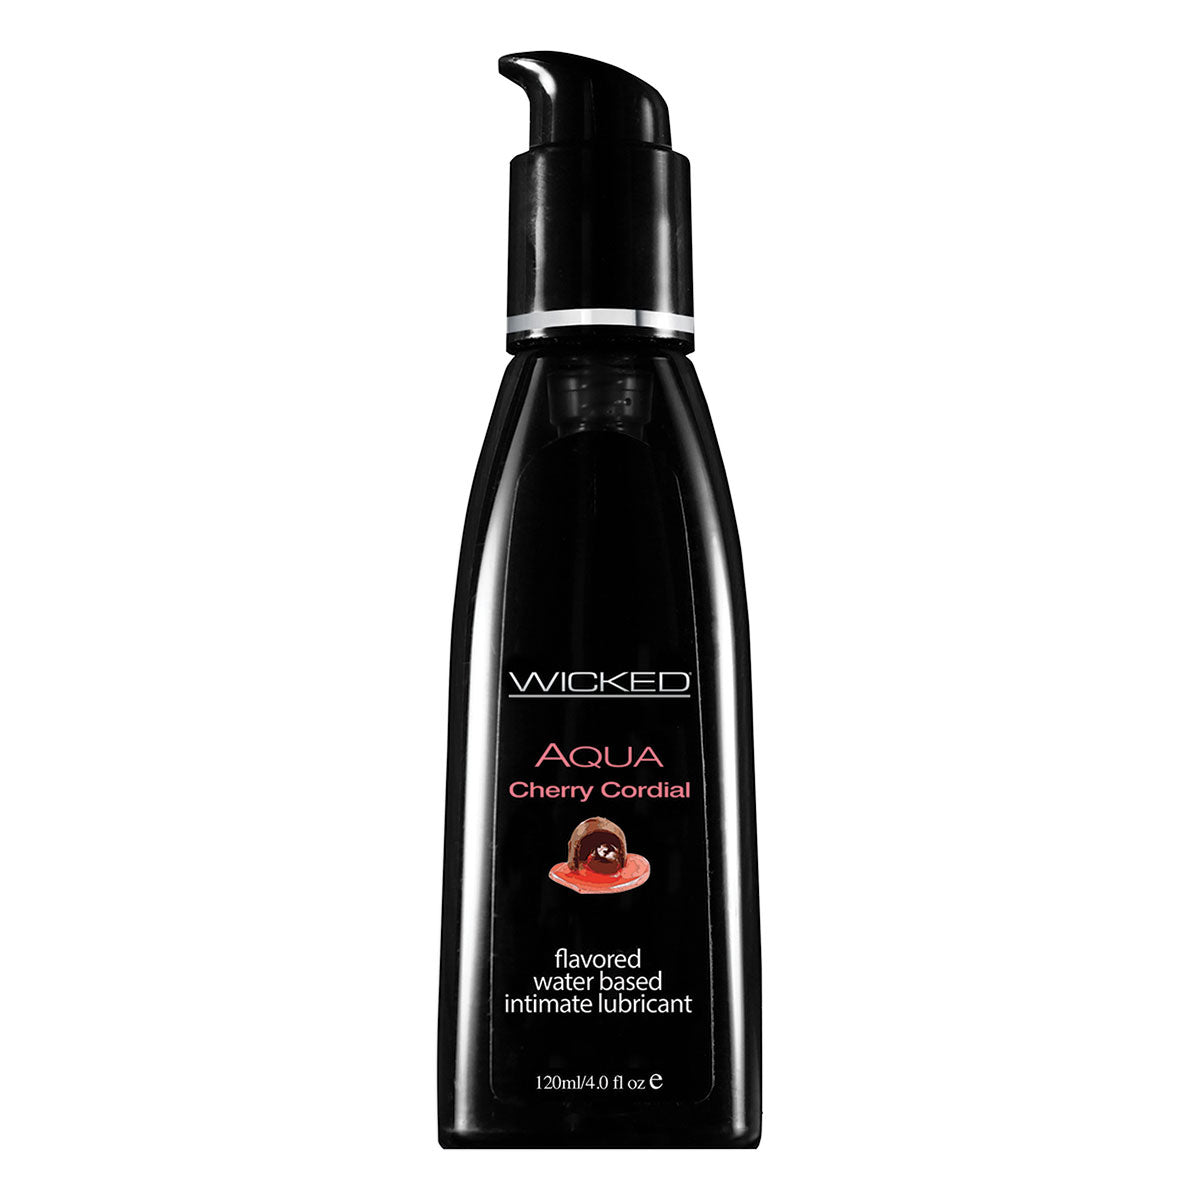 Wicked Sensual Care Aqua 4oz Cherry Cordial